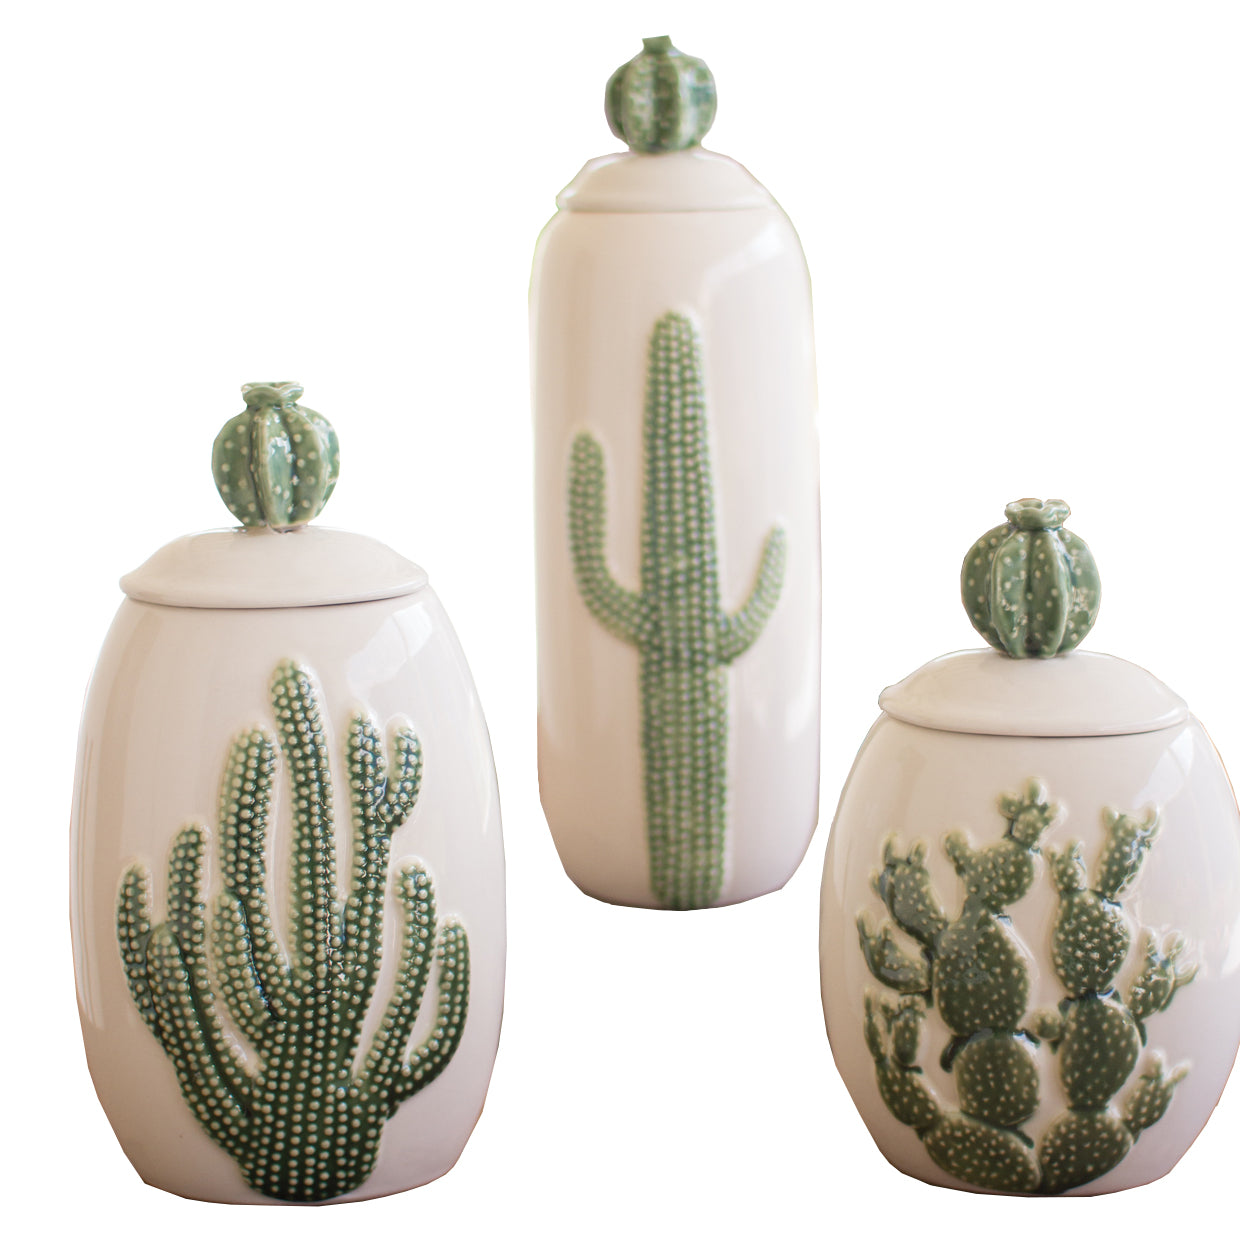 Ceramic southwest cactus cacti canisters set of 3 for Hearth and home designs canister set